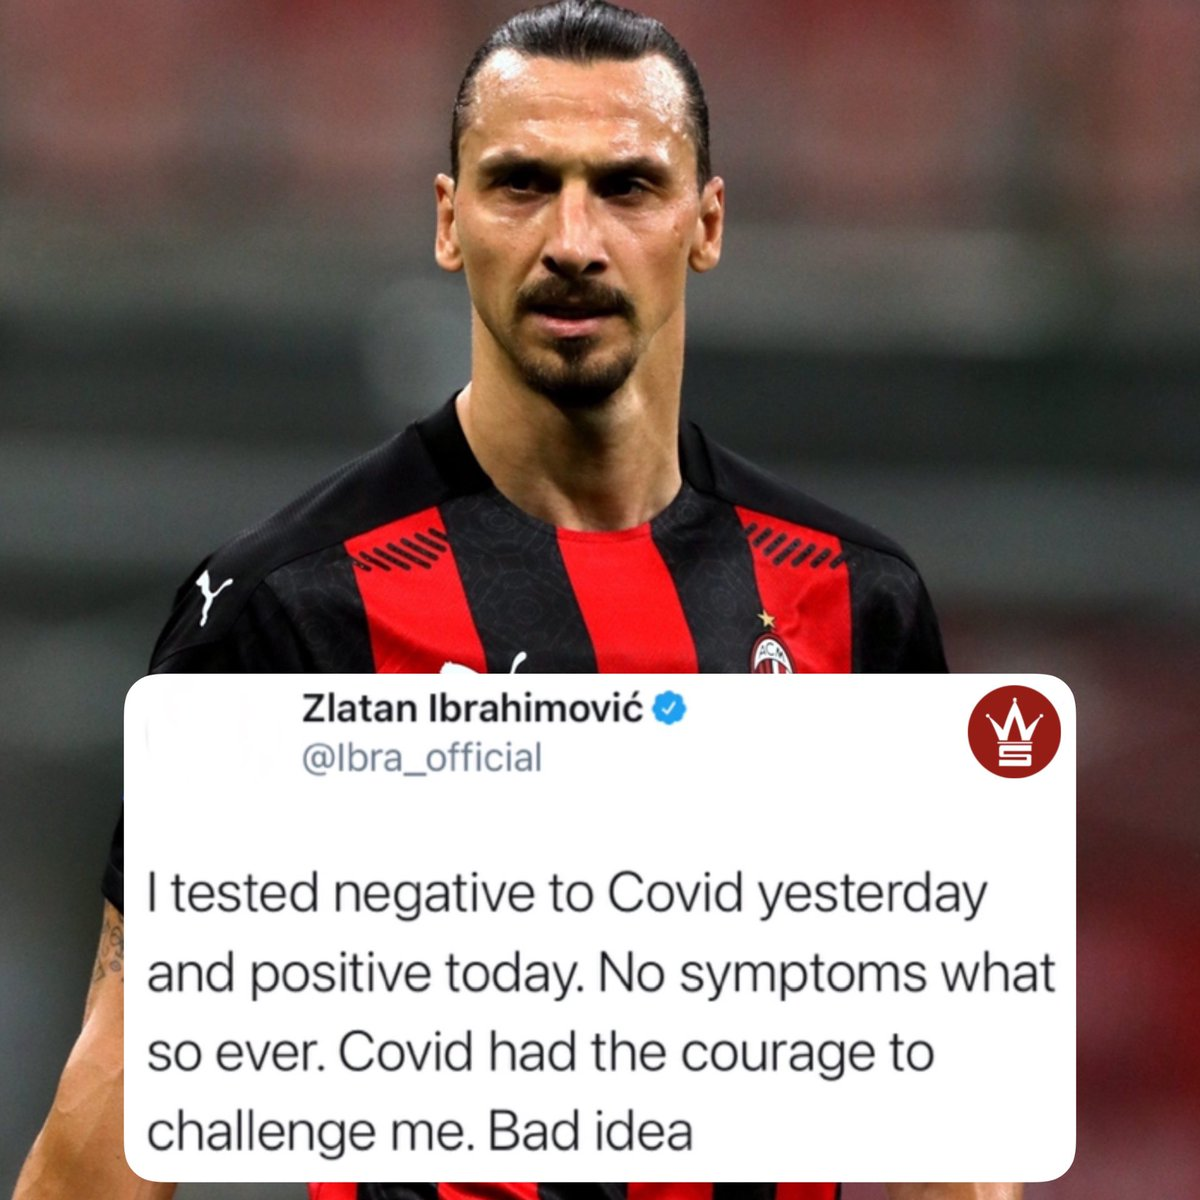 #ZlatanIbrahimovic had this to say in regards to testing positive for #Covid19. We wish him a speedy recovery. 🙏 @Ibra_official https://t.co/LdT2gCqaSS